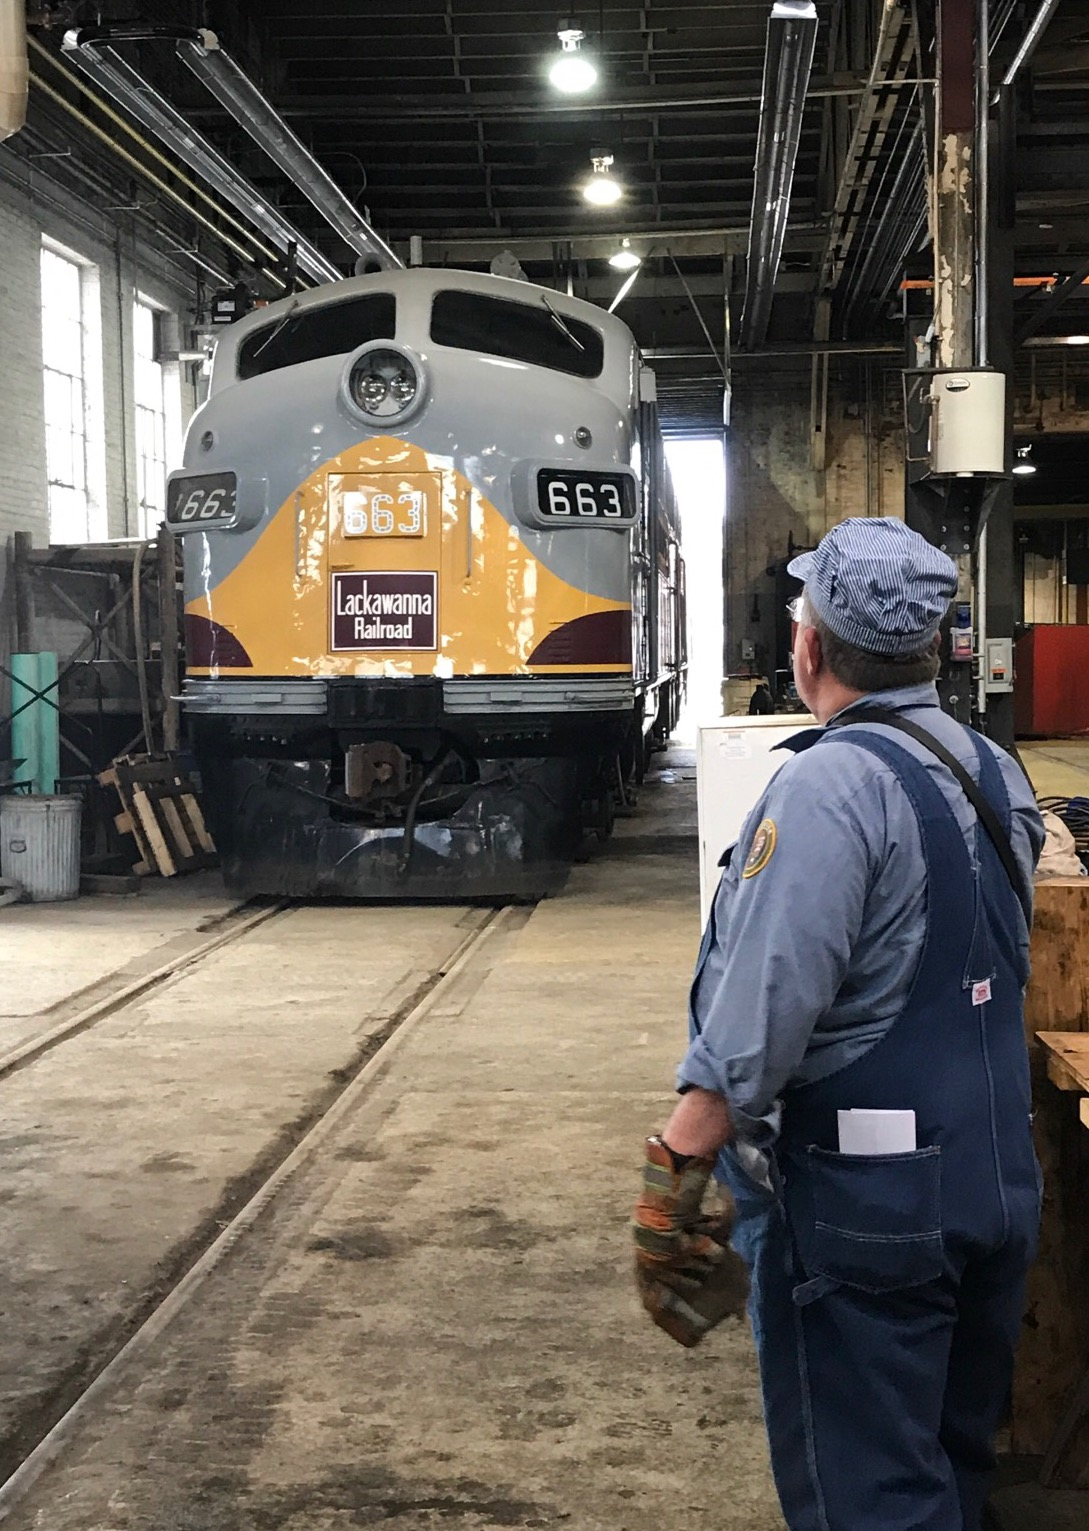 Anthracite Railroads Historical Society's 664 is on shop switcher duty as it shoves Tri-State's 663 into the shop.